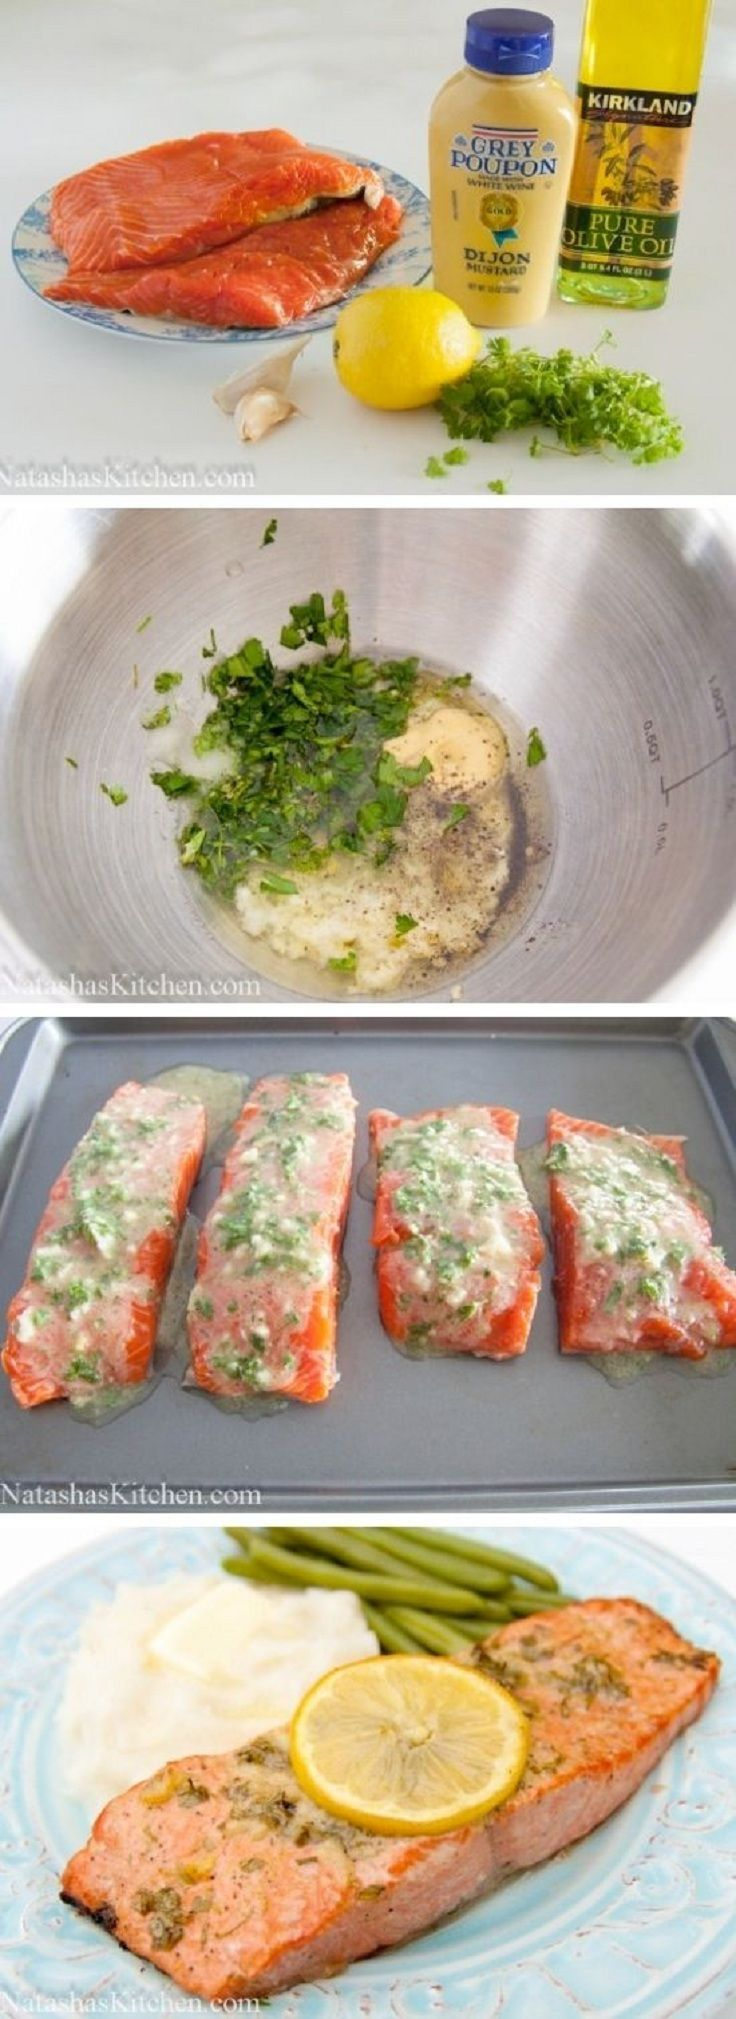 Great Salmon marinade; Olive Oil, Dijon Mustard, Crushed Garlic, Juice of a lemon, dill basil or your favorite pairing with Salmon, Marinade for min of 1 hour - then grill or bake! Yumm